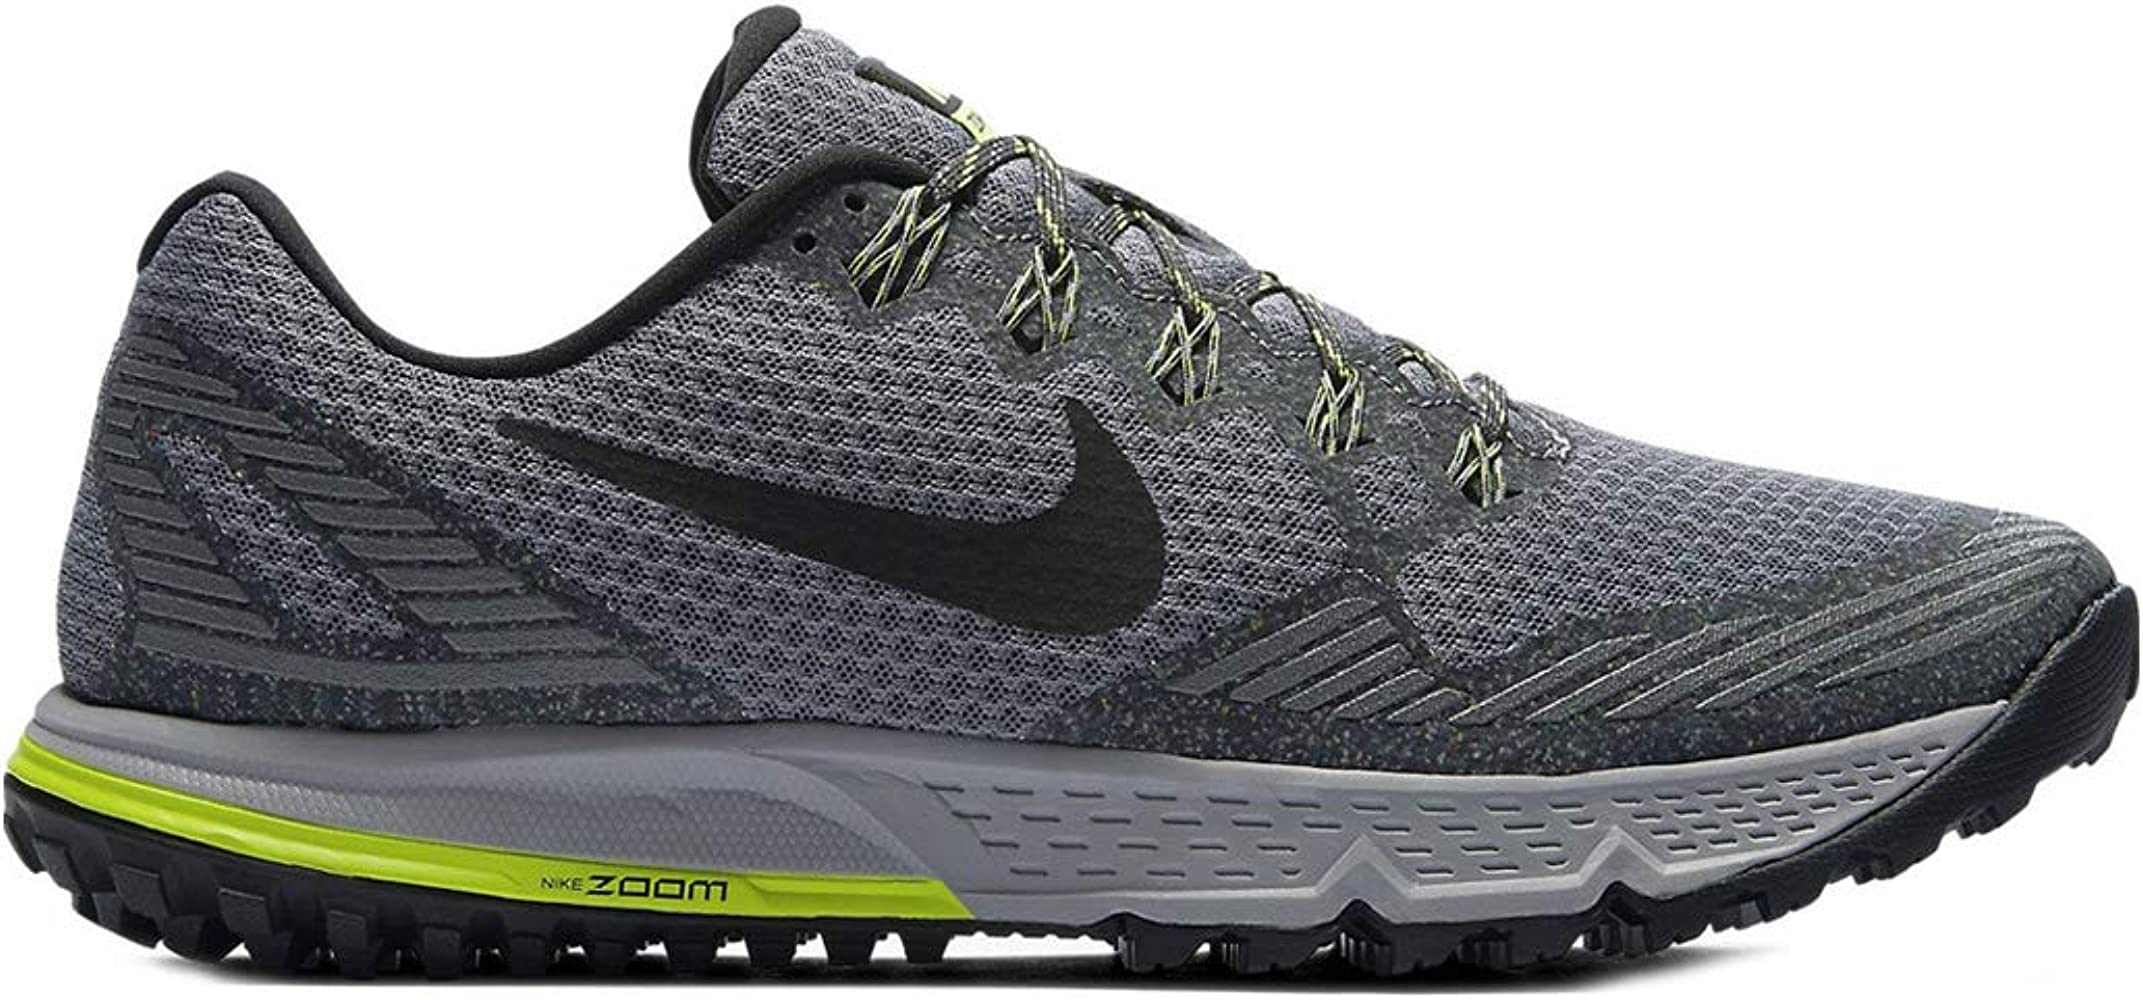 Nike Air Zoom Wildhorse 3, Zapatillas de Running para Hombre, Gris (Gris (Cool Grey/Blk-Anthrct-WLF Gry), 42.5 EU: Amazon.es: Zapatos y complementos